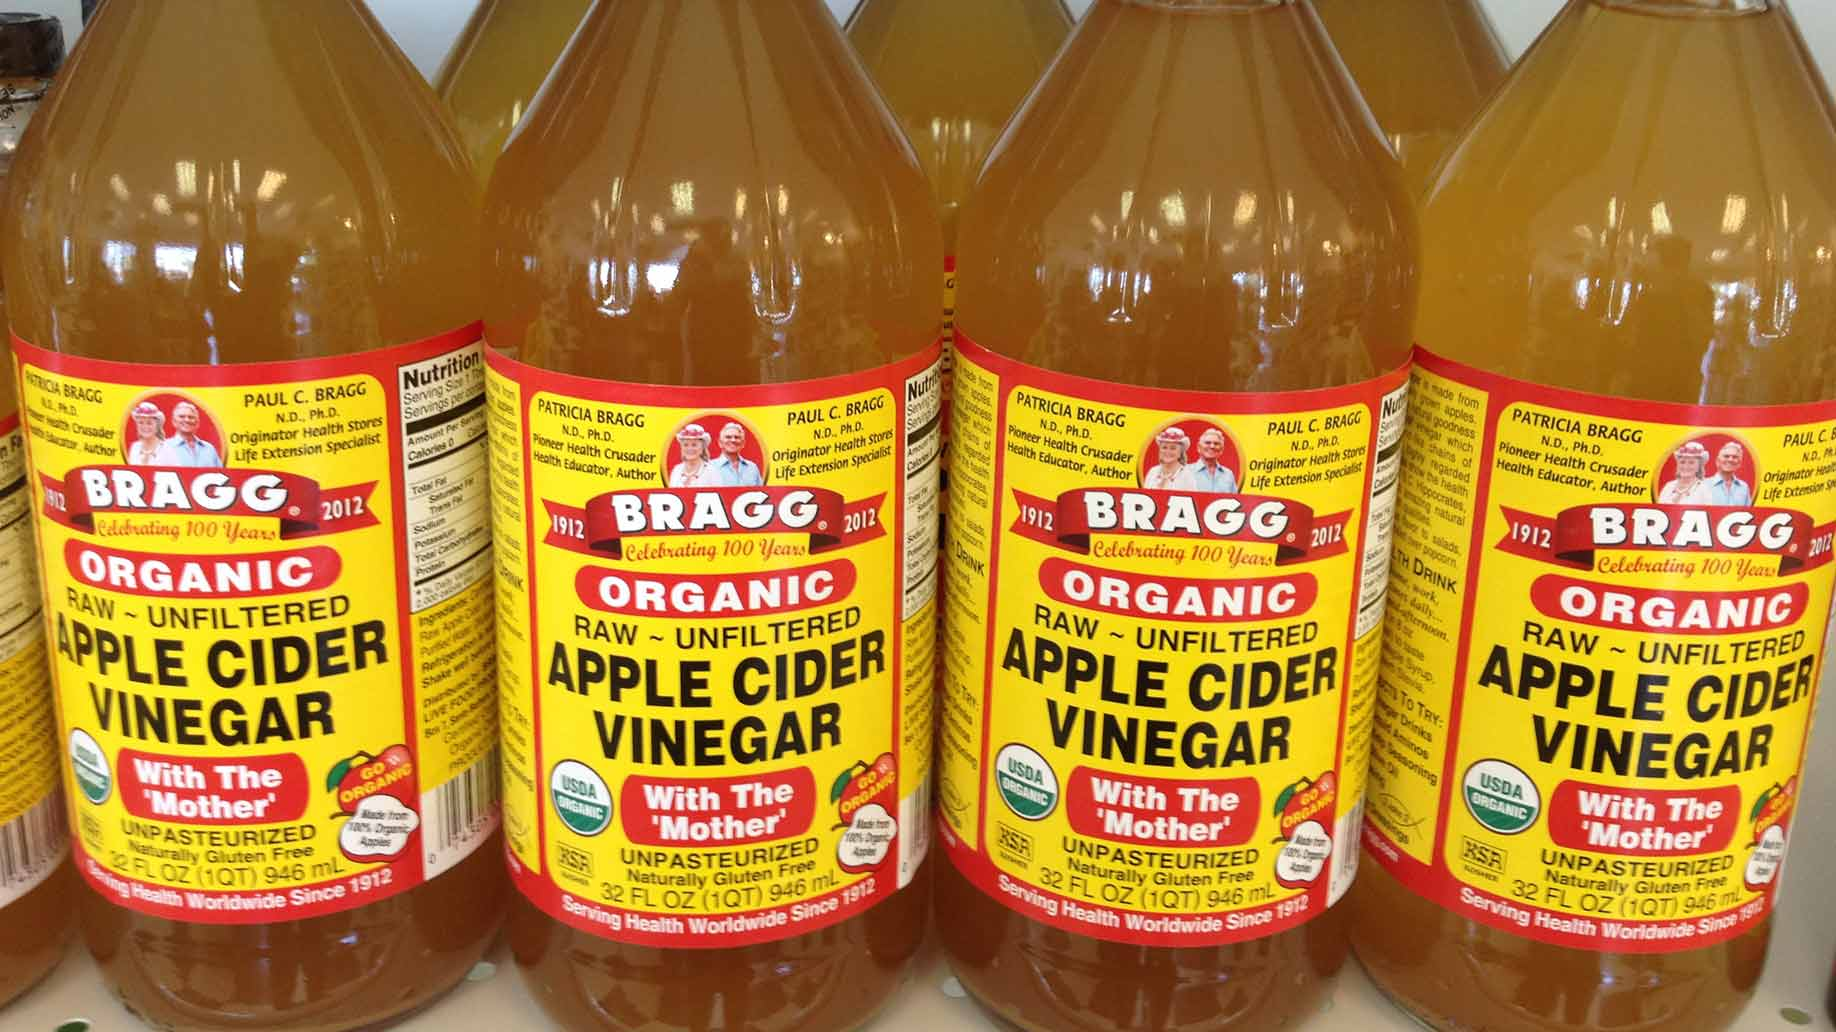 bragg organic raw unfiltered apple cider vinegar glass jar